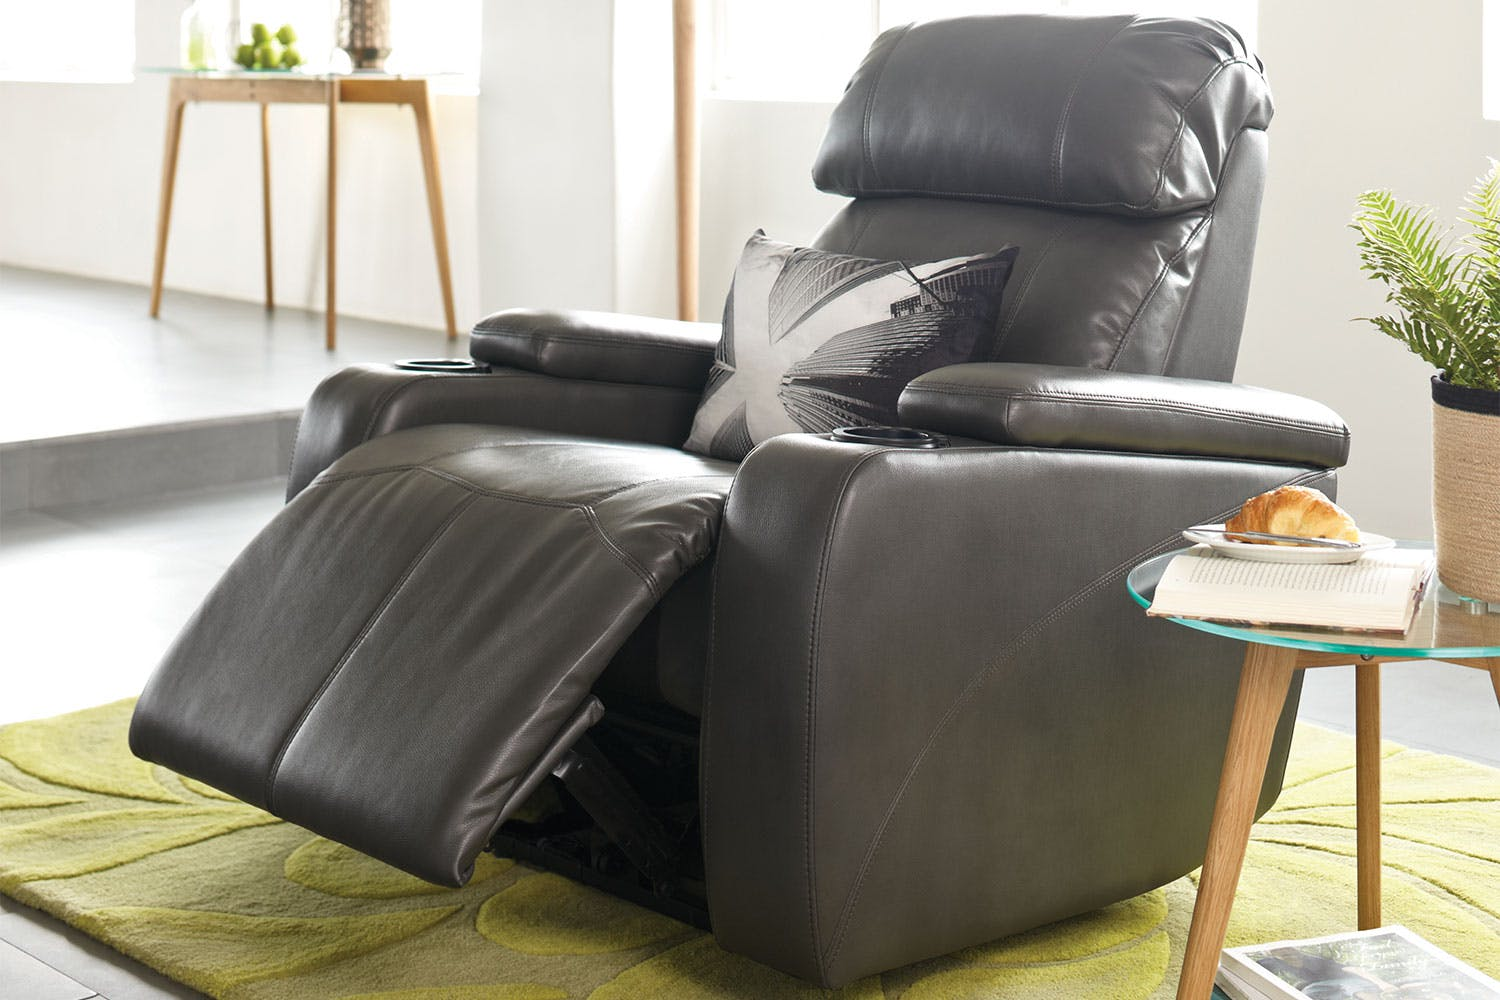 Magnificent Ergo Electric Recliner Chair By Synargy Cjindustries Chair Design For Home Cjindustriesco